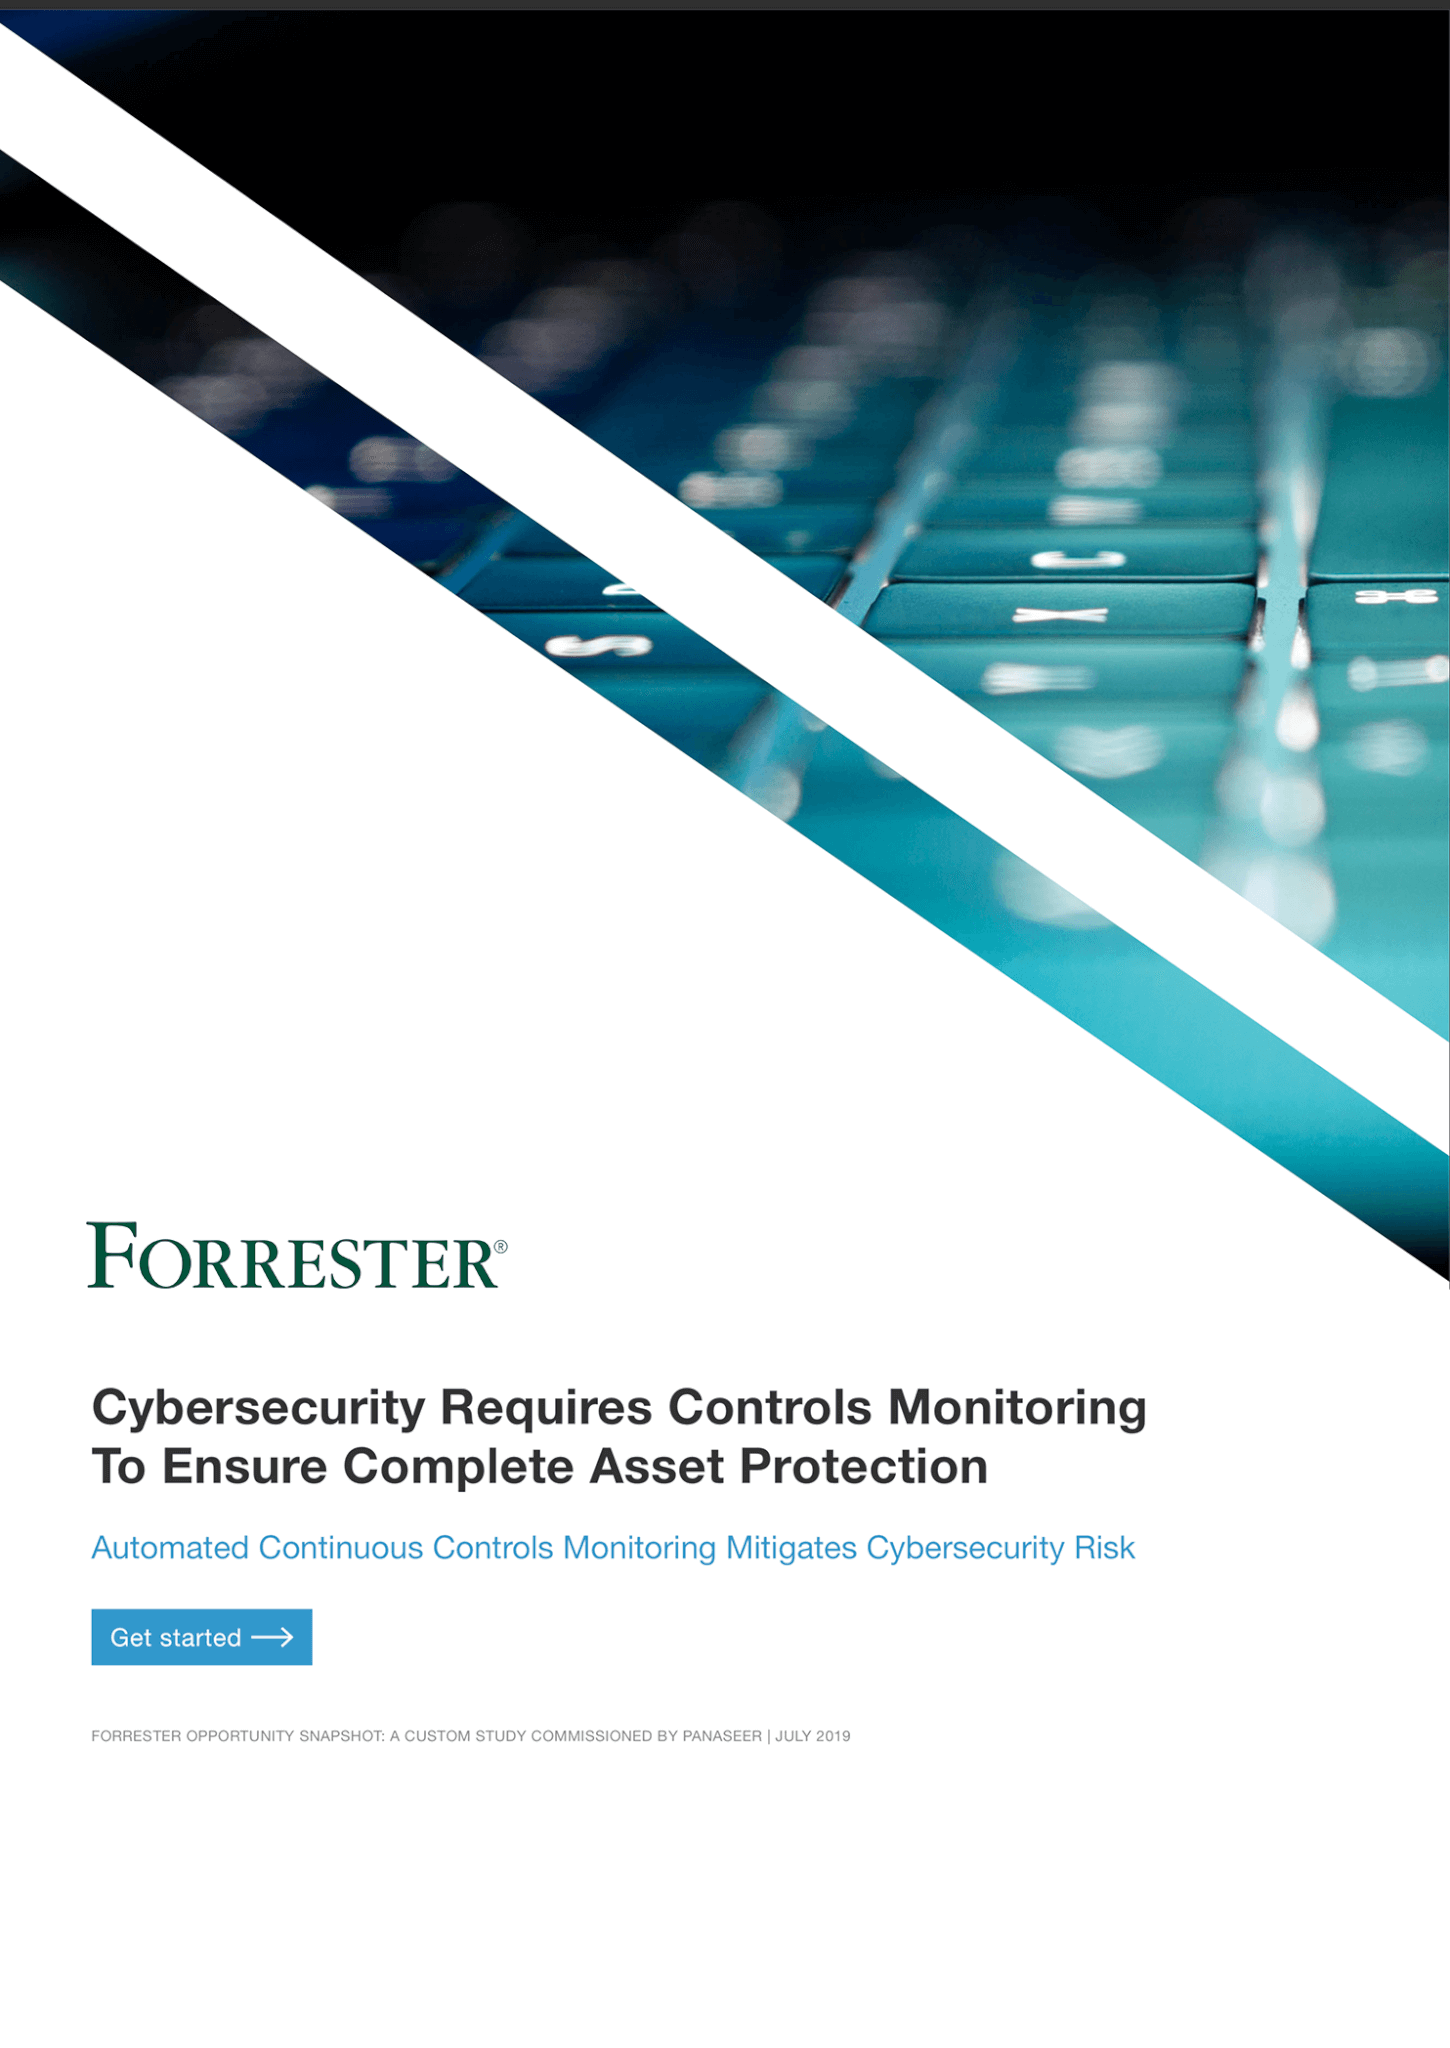 Forrester report: Misplaced confidence in security controls is putting organisations at risk